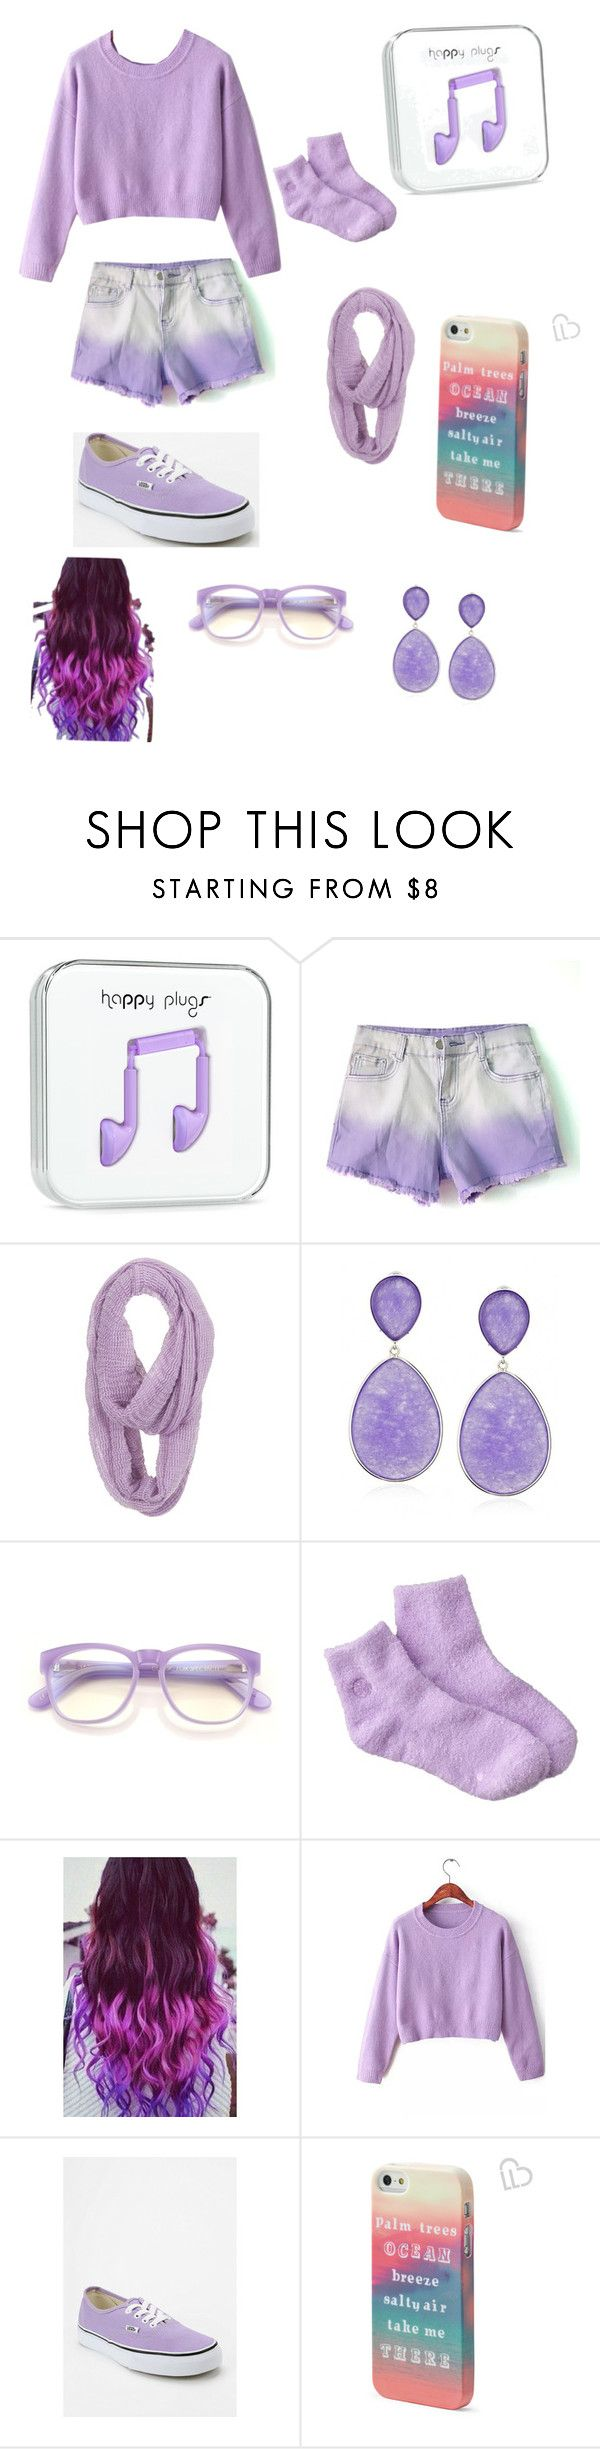 """Prettiest Lavender Outfit"" by nateya1222 ❤ liked on Polyvore featuring maurices, Earth Therapeutics, Vans and Aéropostale"